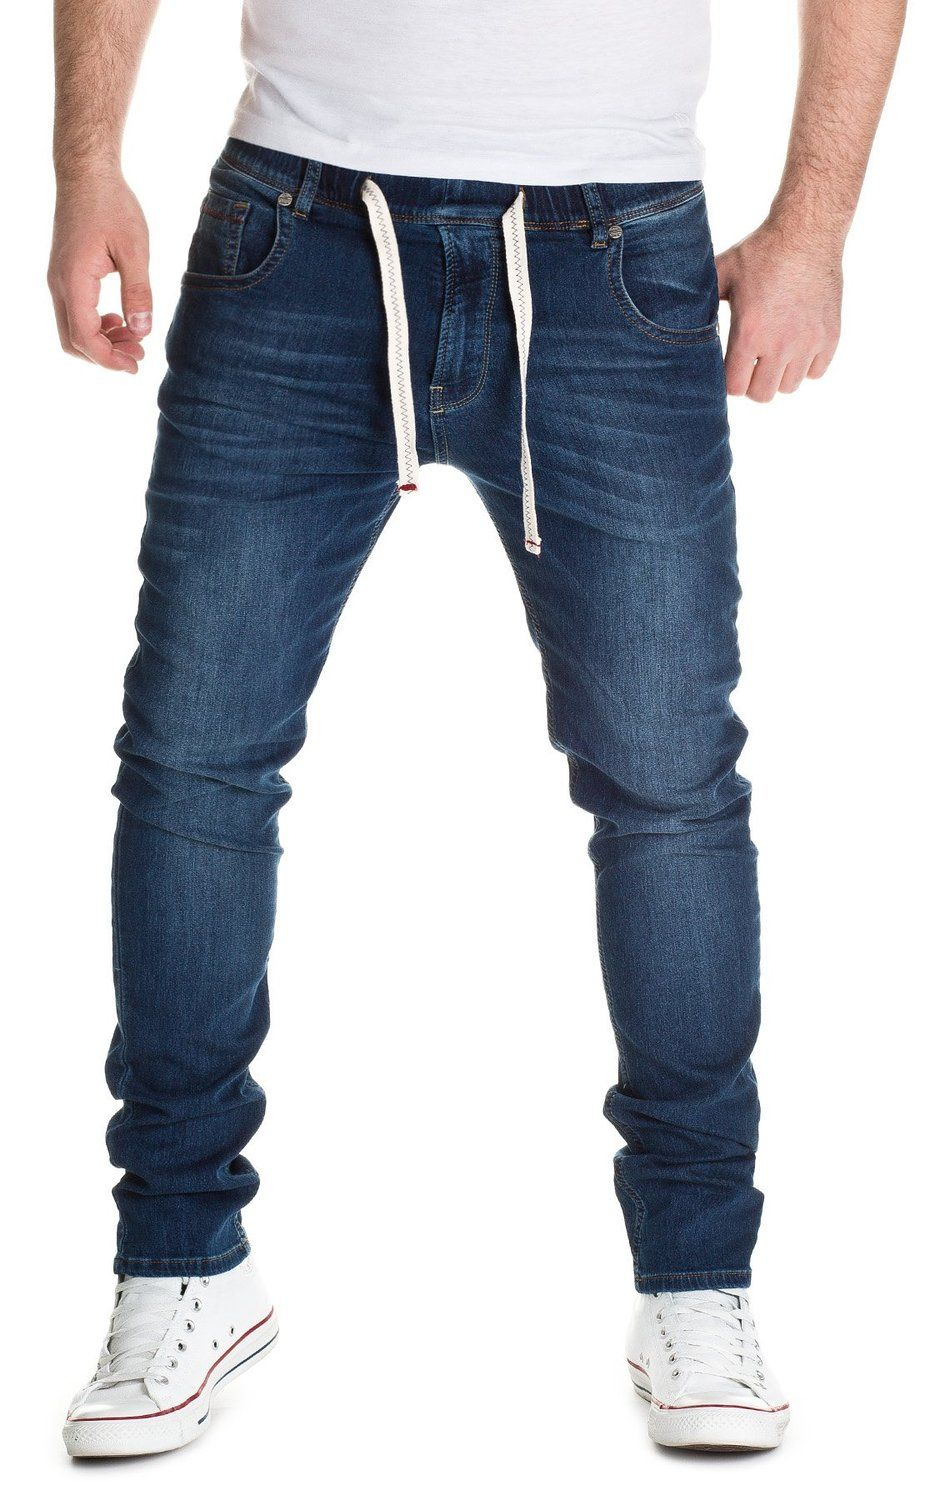 f8dab0732abe Yazubi Designer Sweatpants in Jeans-look - Steve - Jeans Jogger Pants at Amazon  Men s Clothing store